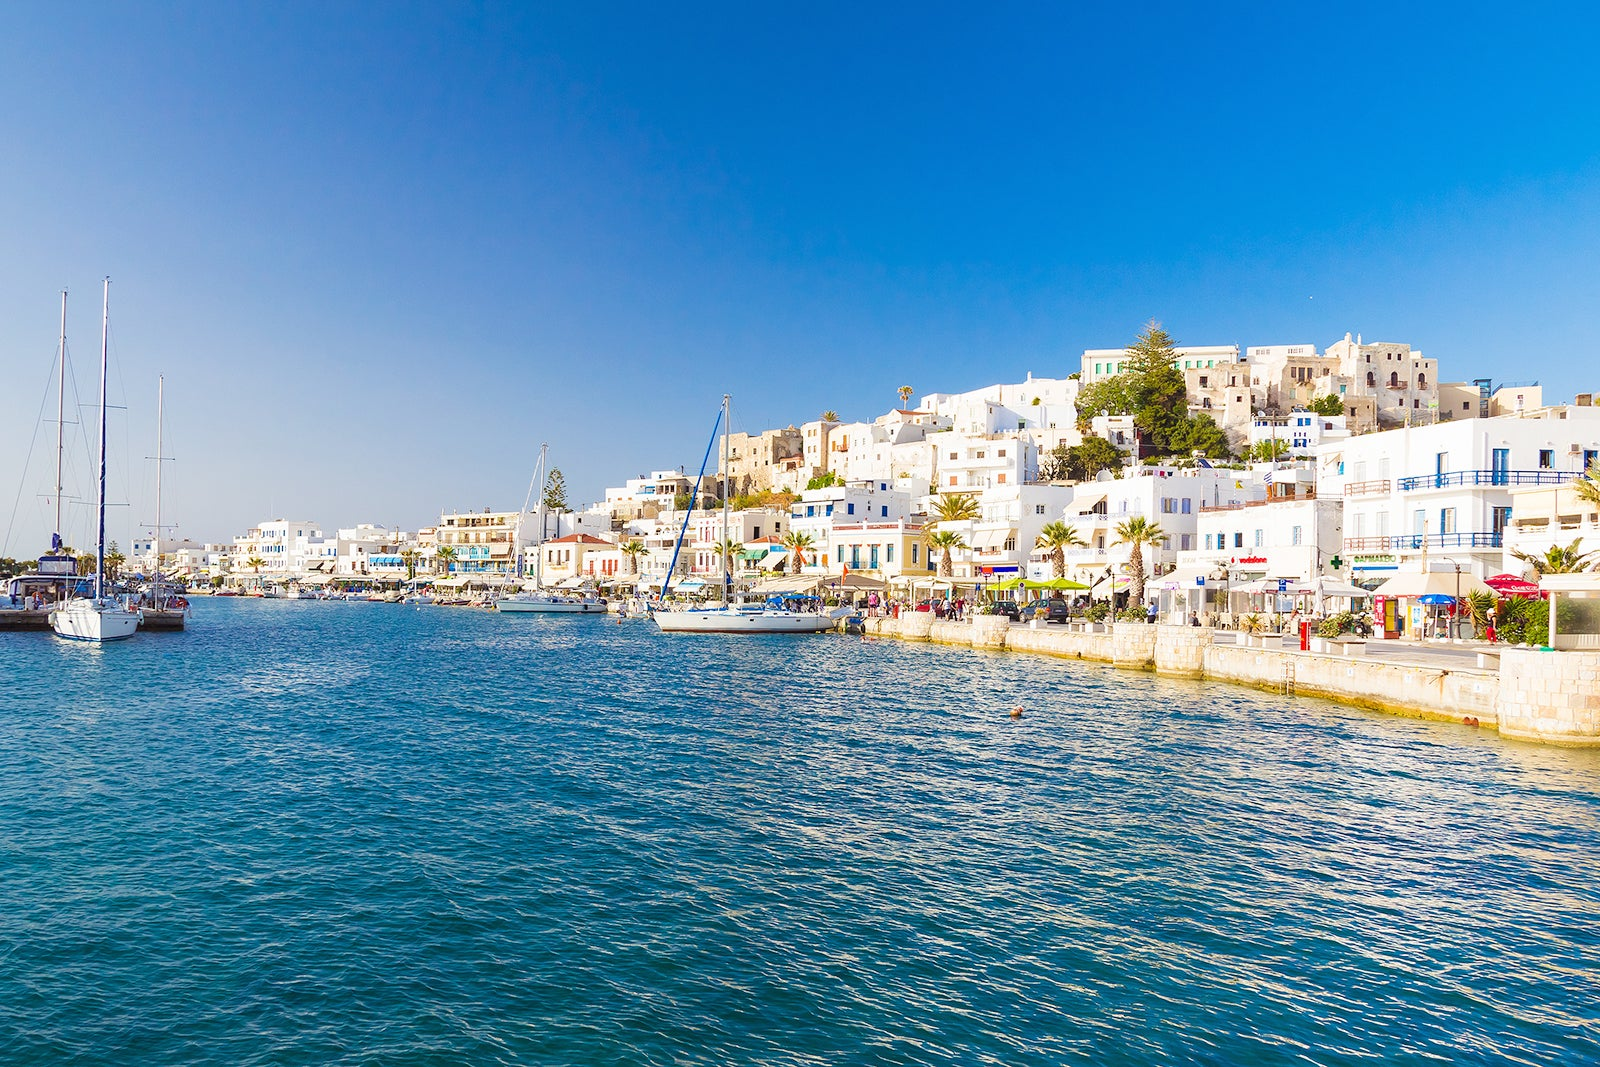 10 Best Things to Do in Naxos - What is Naxos Most Famous For?